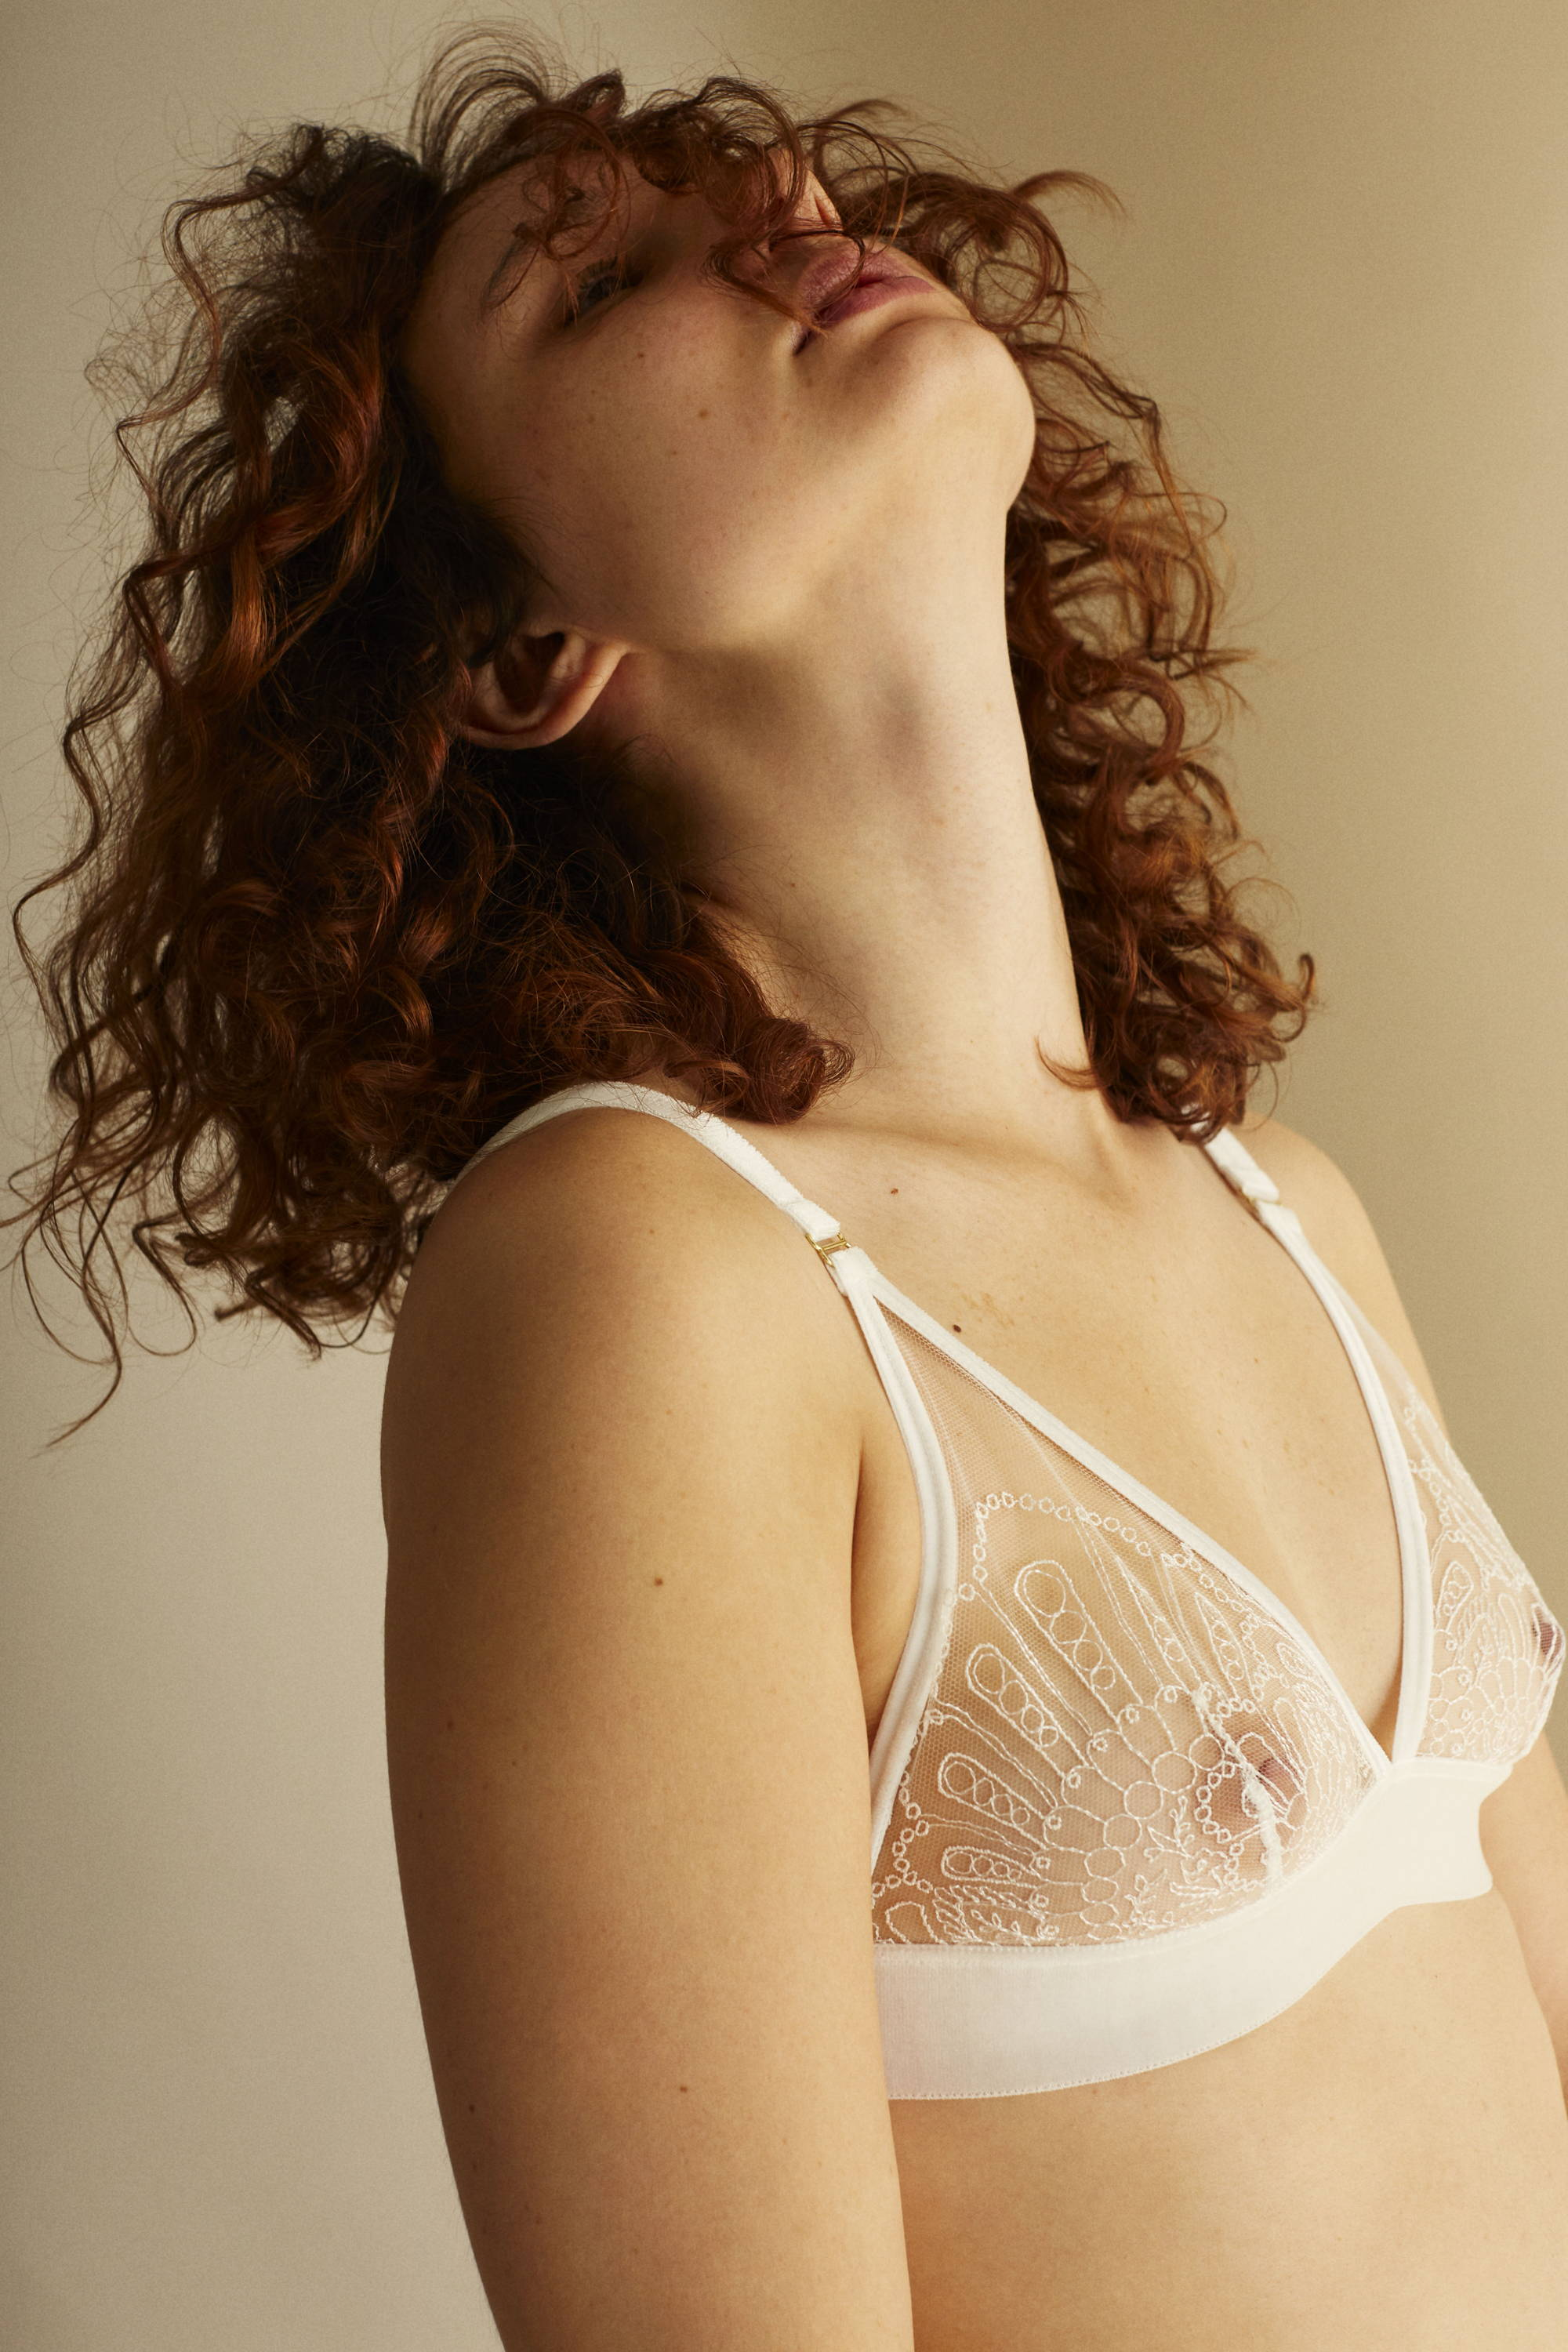 Woman wearing The Underargument For Love Against Conforming Triangle Bra